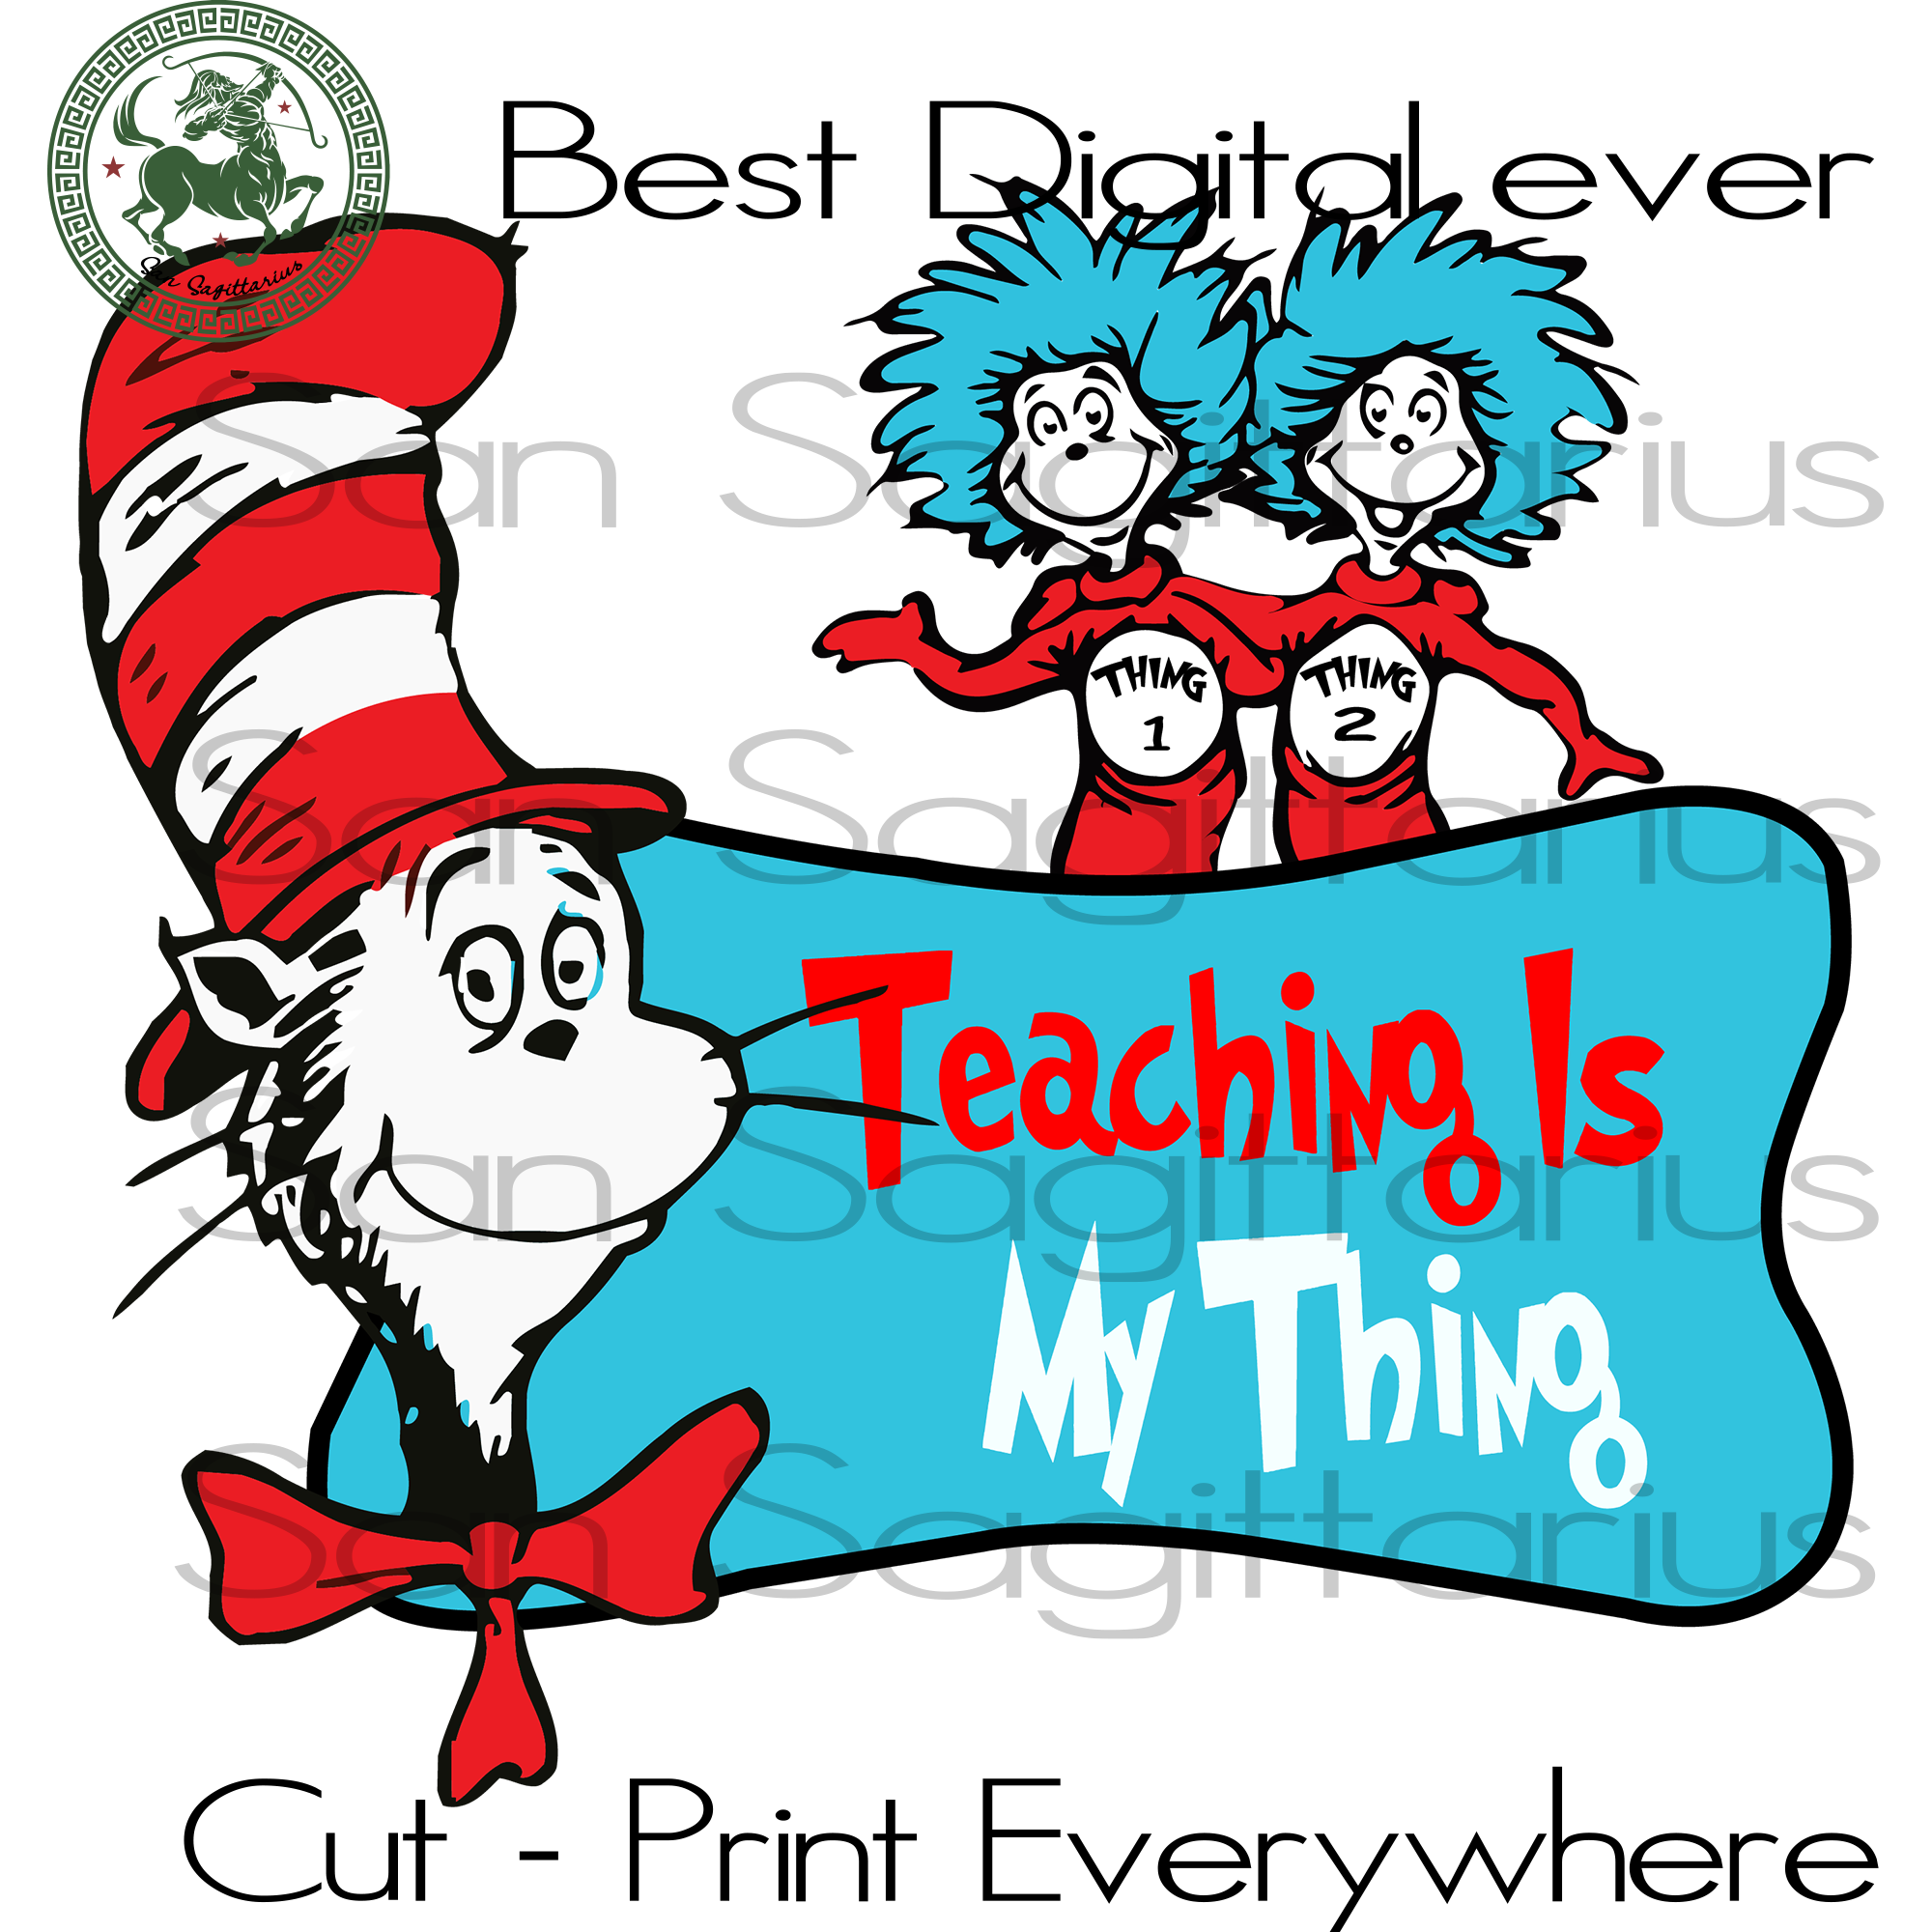 Thanks For The Memories Uploaded With Pinterest Android App Dr Seuss Day Seuss Dr Seuss Pictures